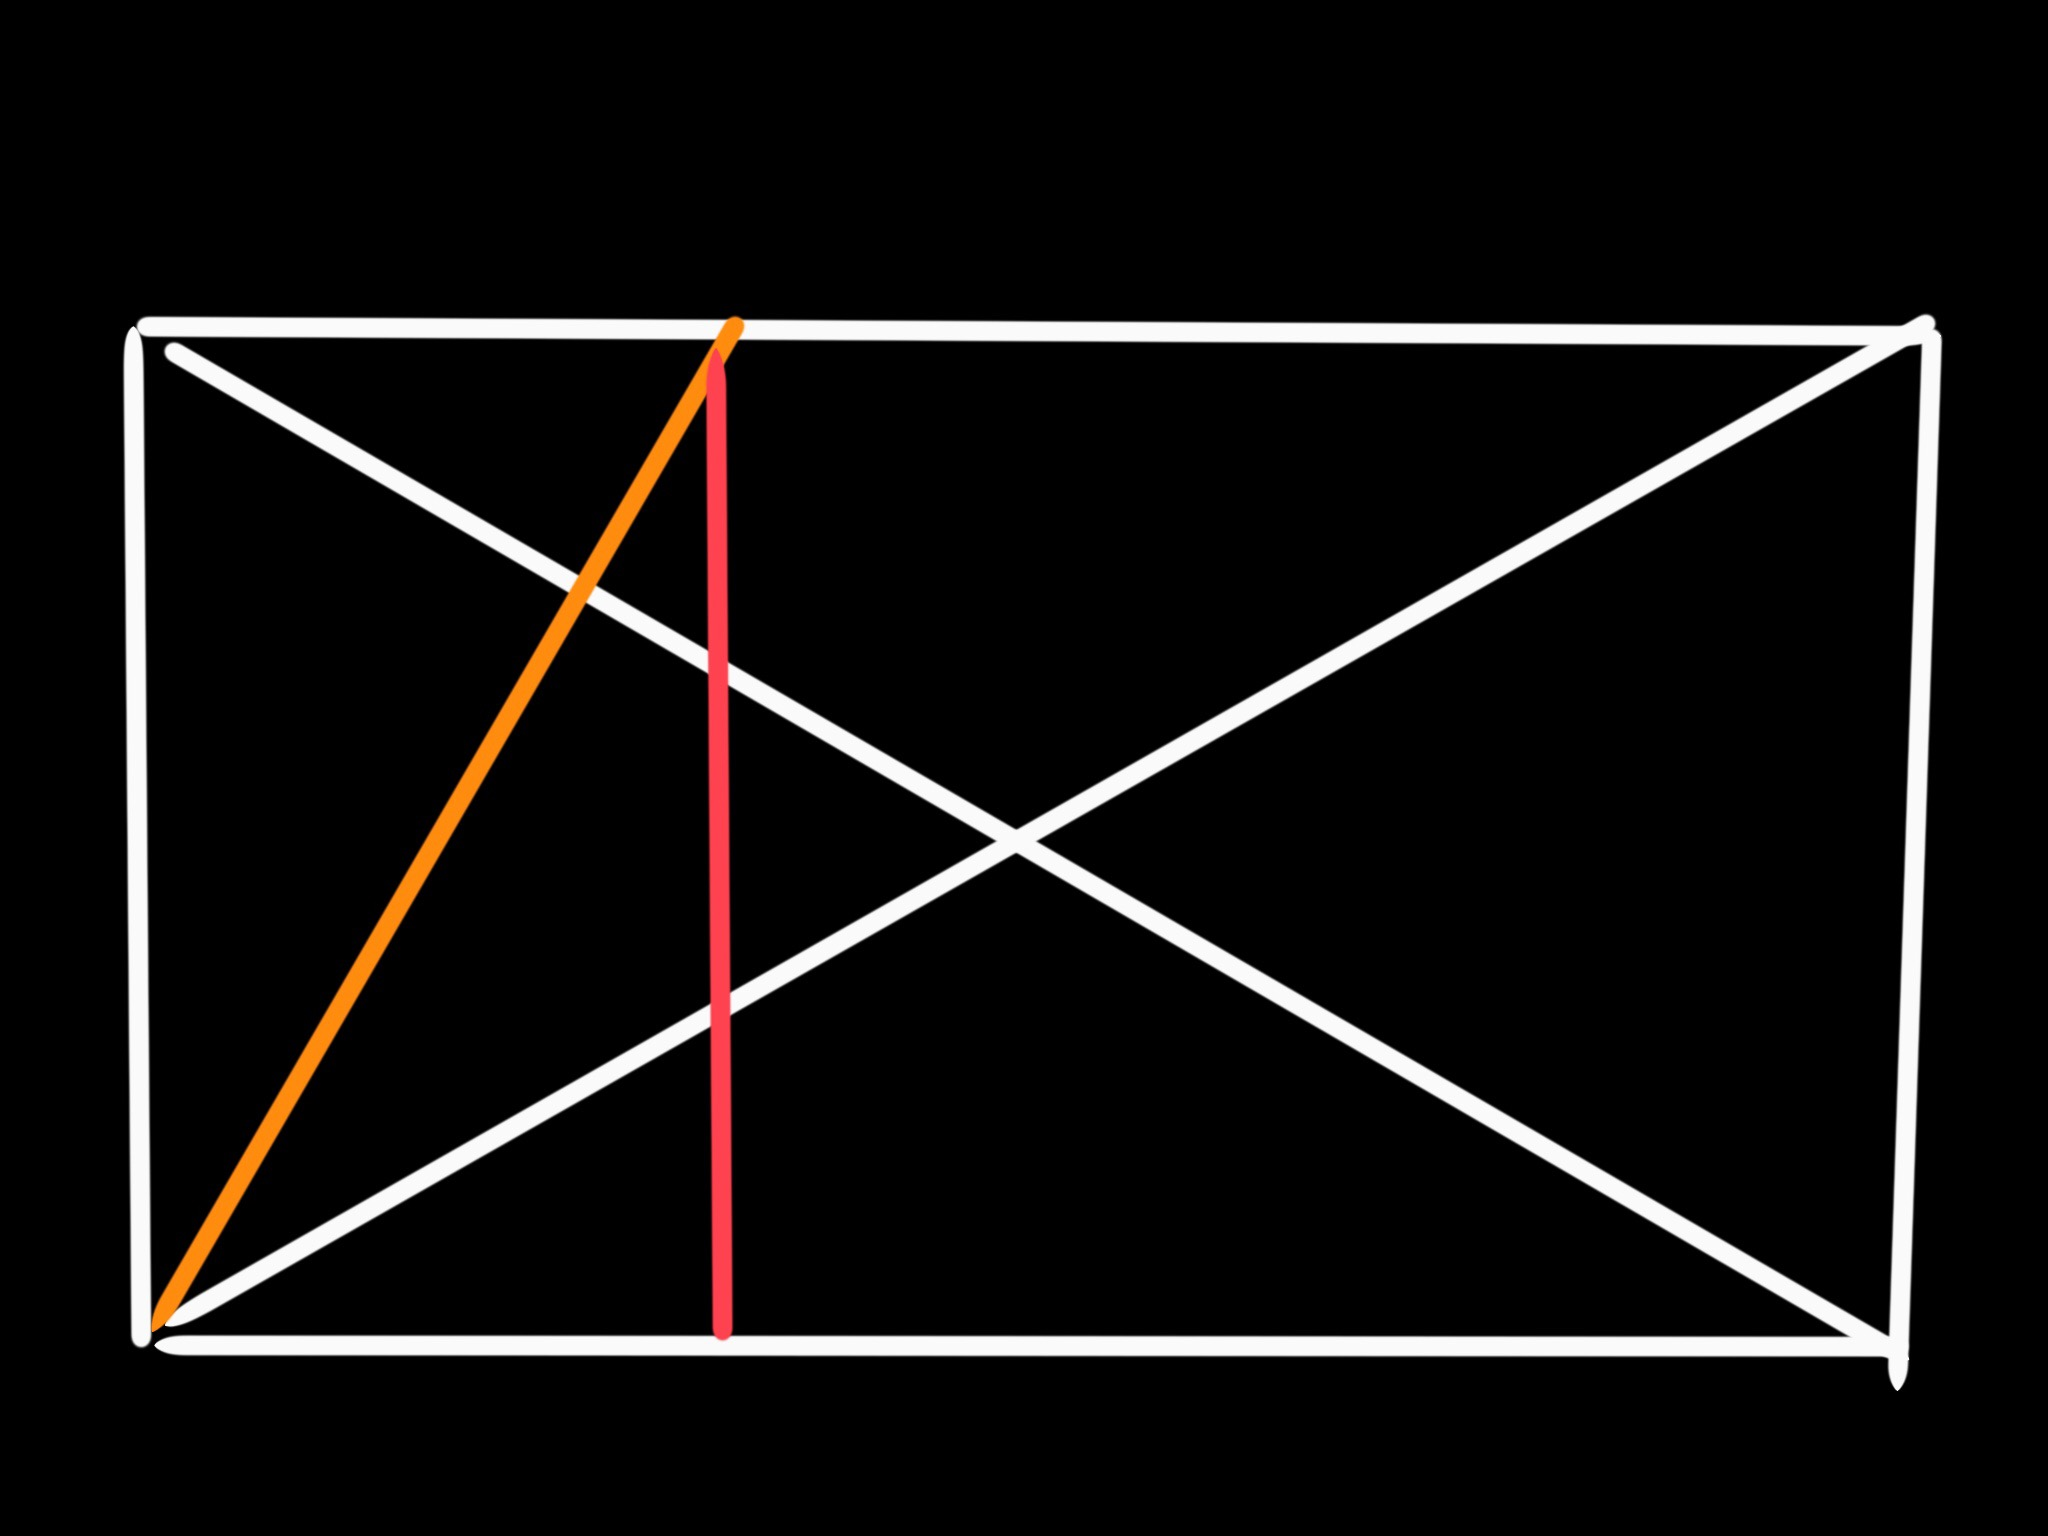 Diagonal grid